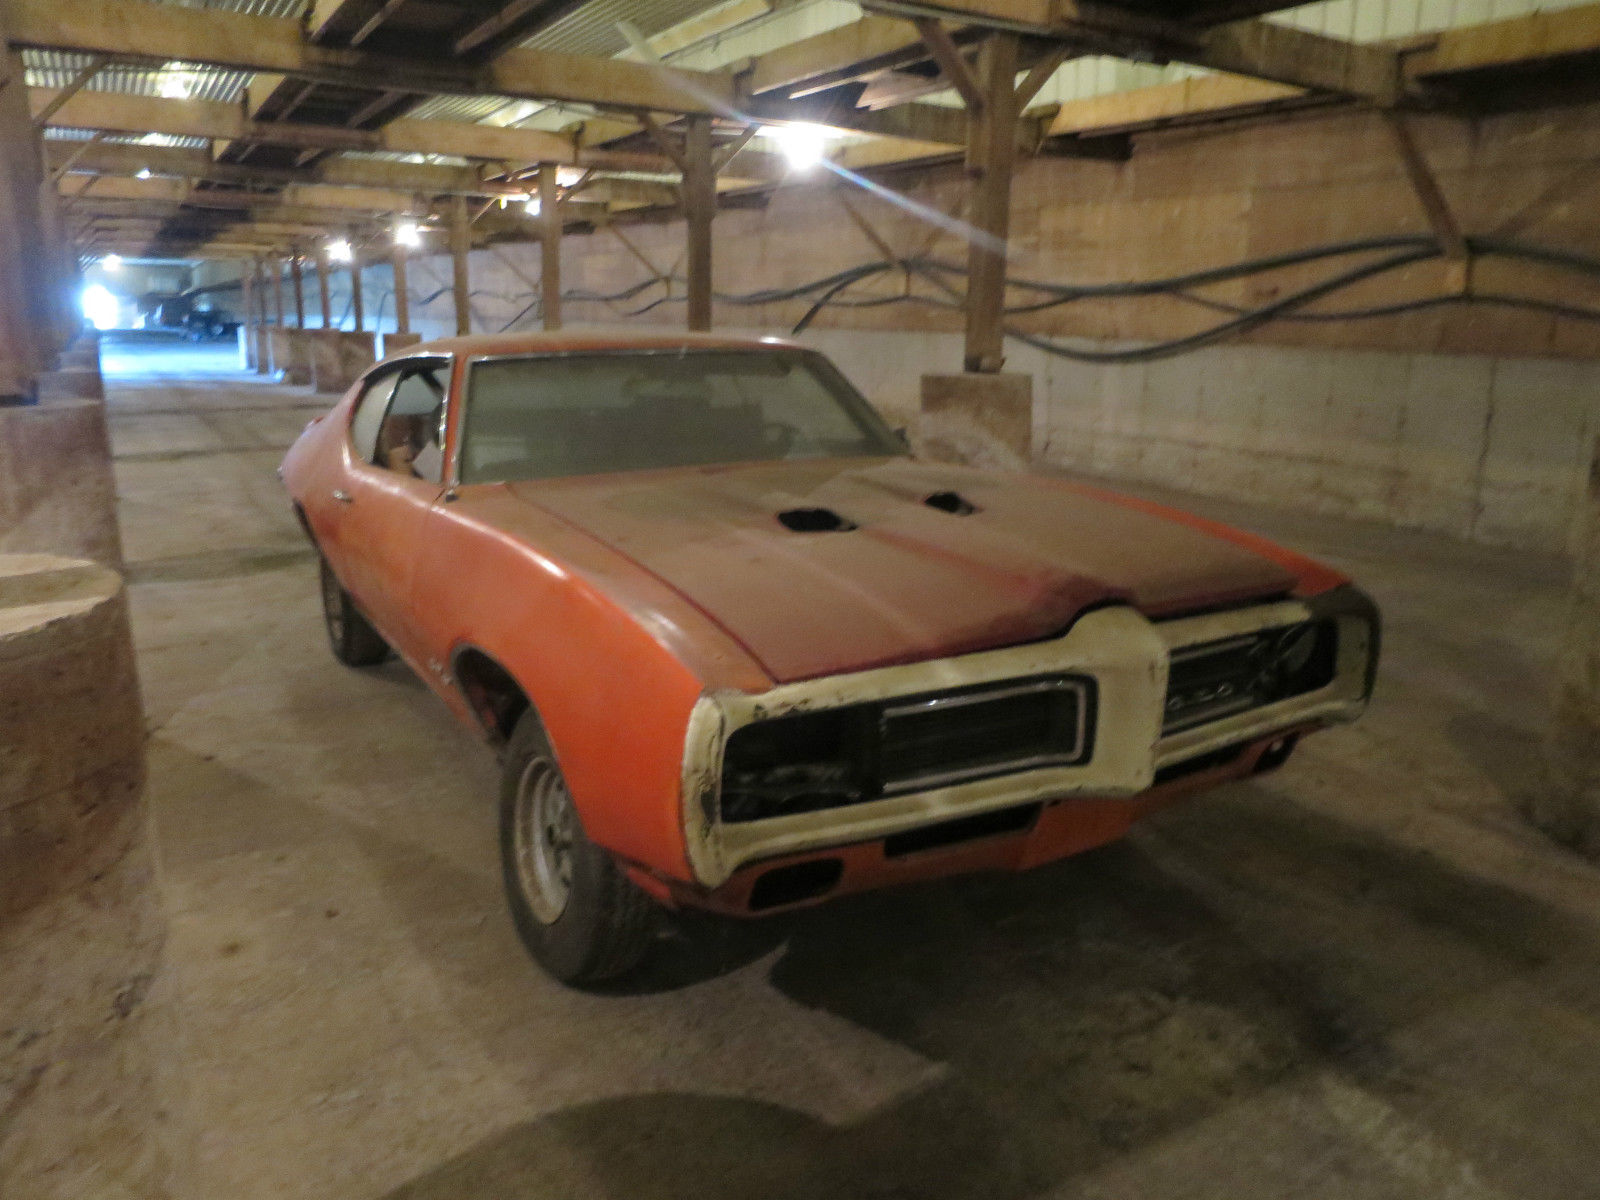 Gto project cars for Sale ( Price from $20000 to $170000)